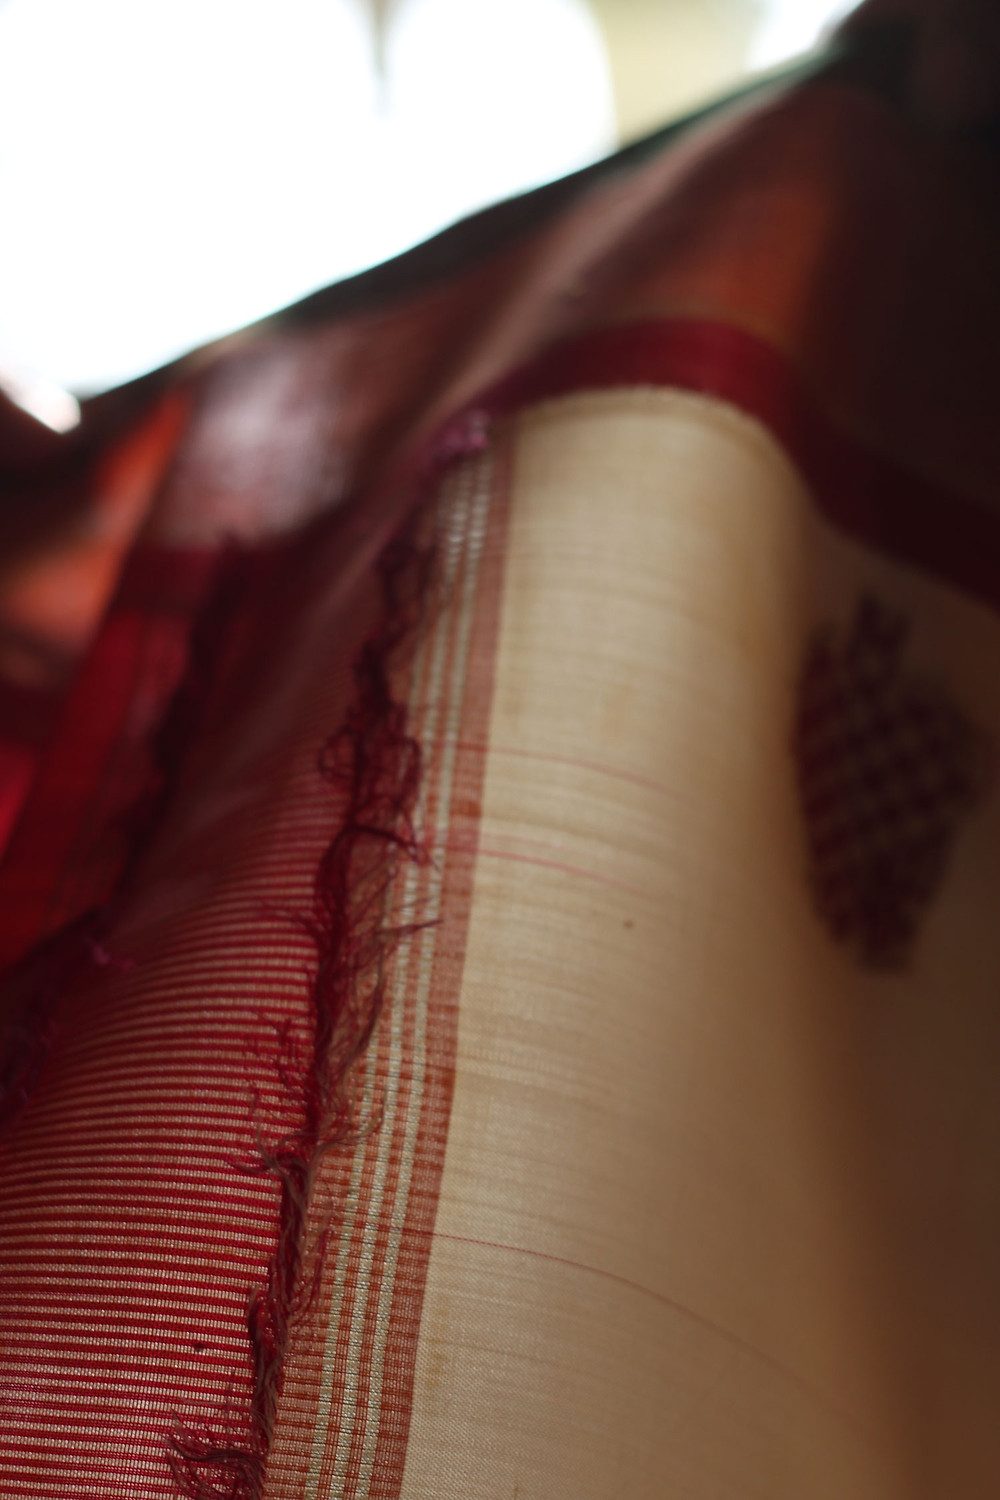 Checked the sari's shape and size